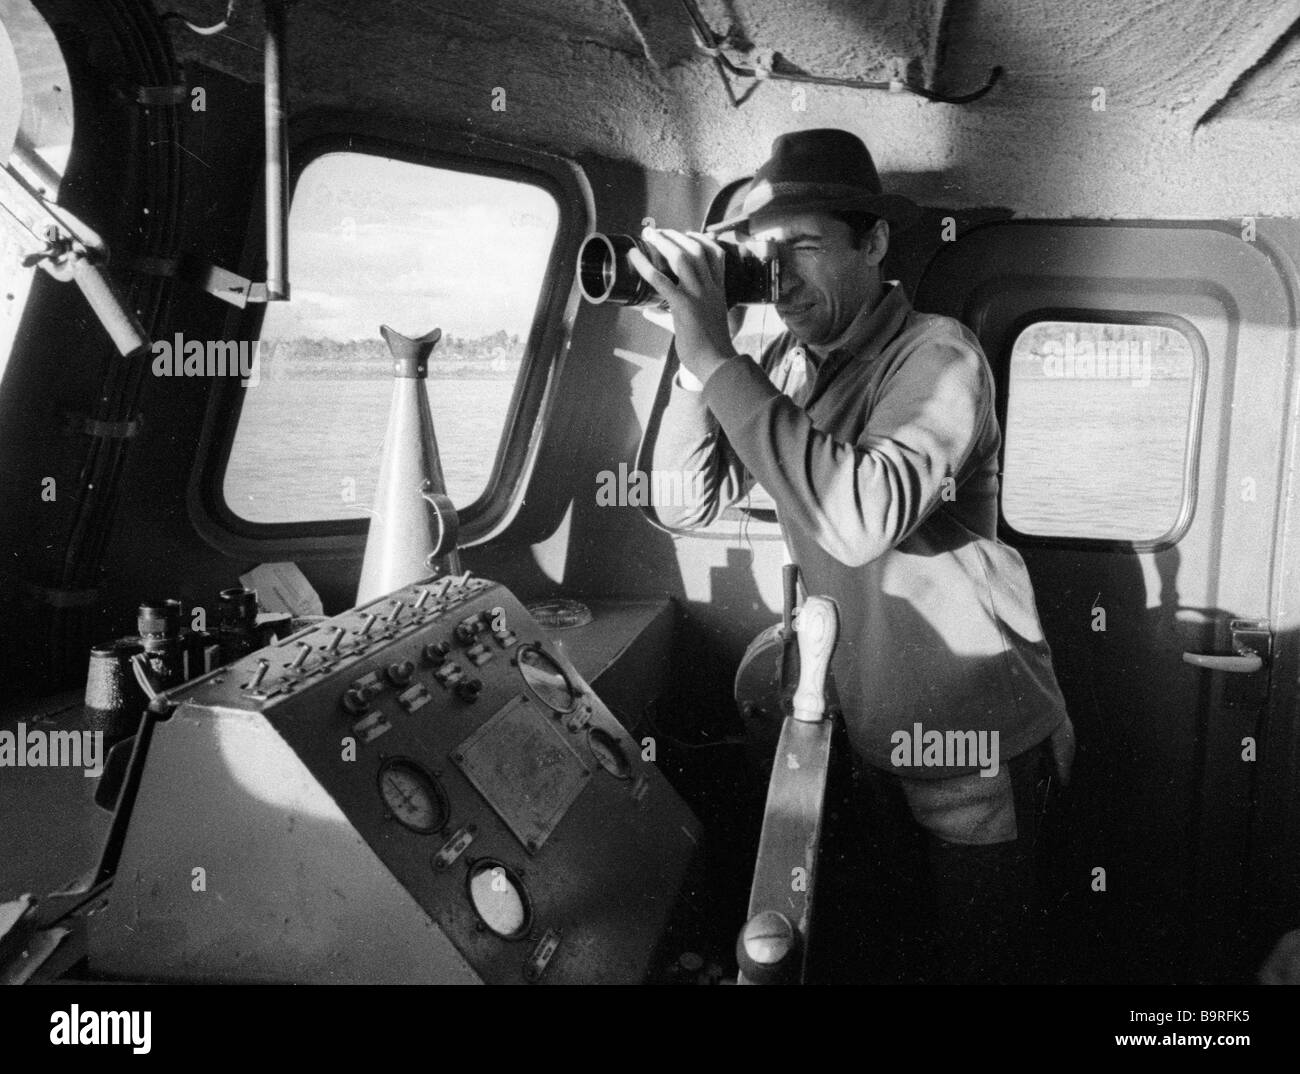 A fishing inspector in his boat watches the river with a spy glass Stock Photo